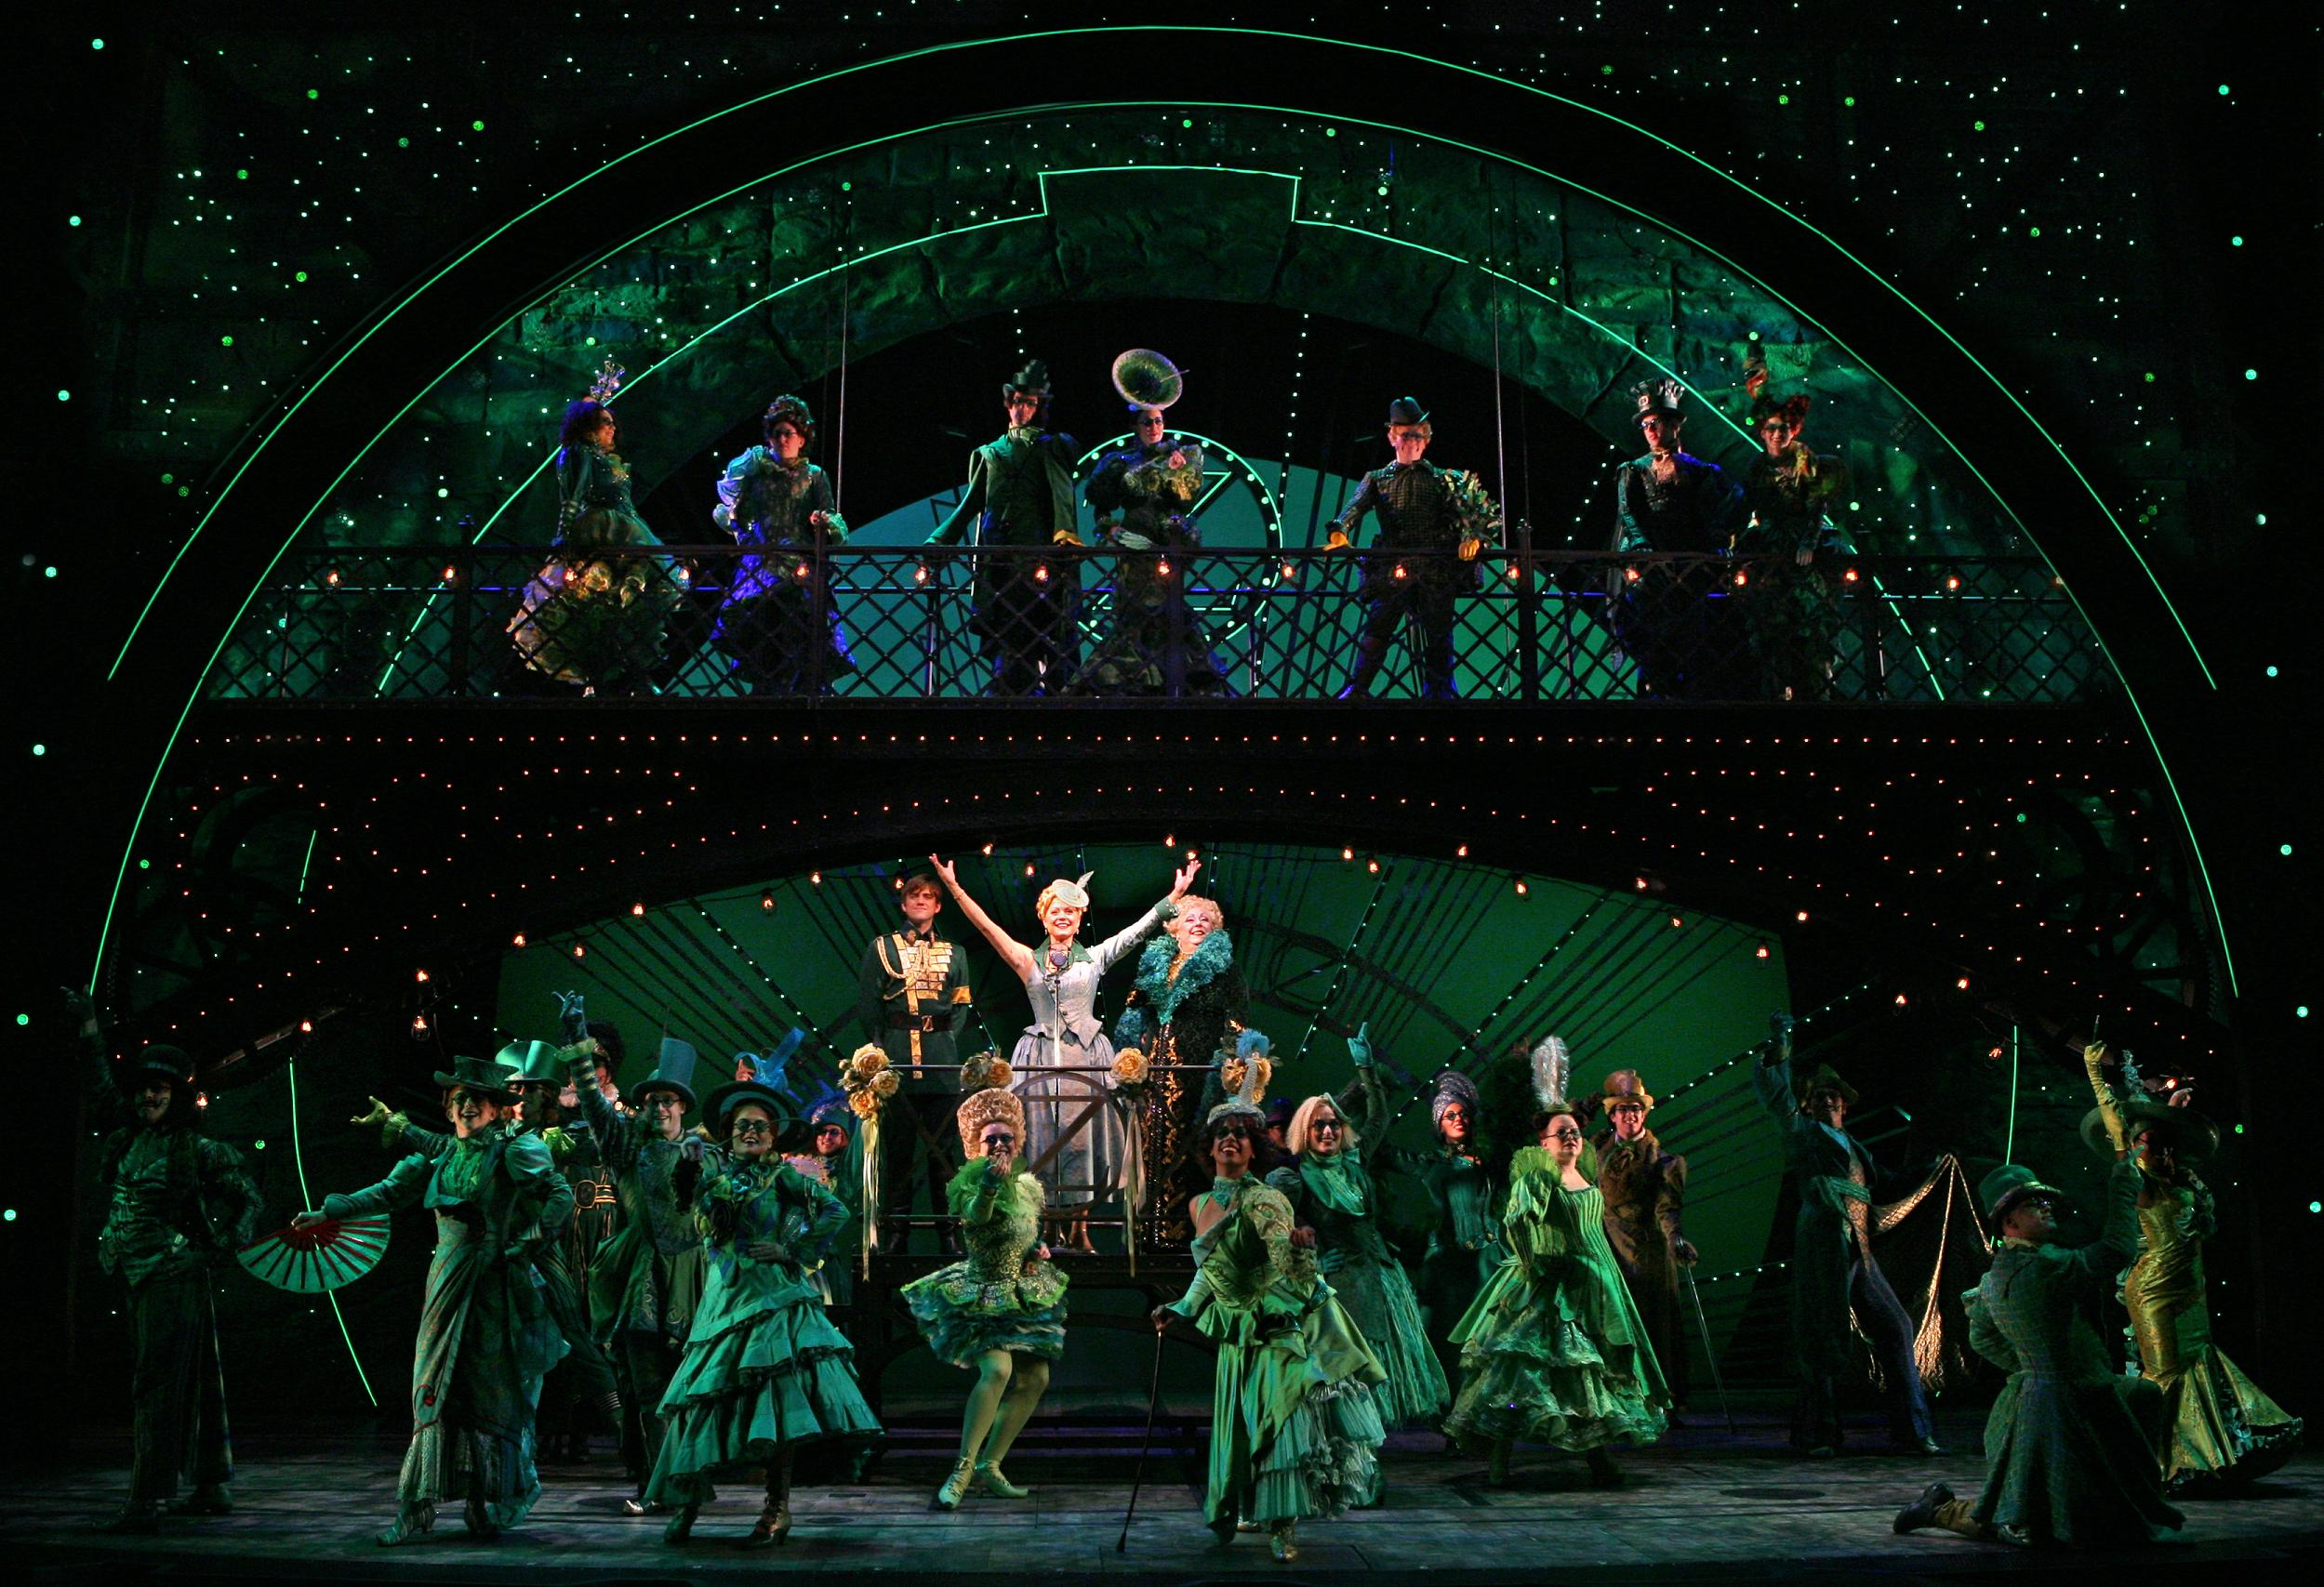 The Broadway Musical Wicked The Vegas Solo